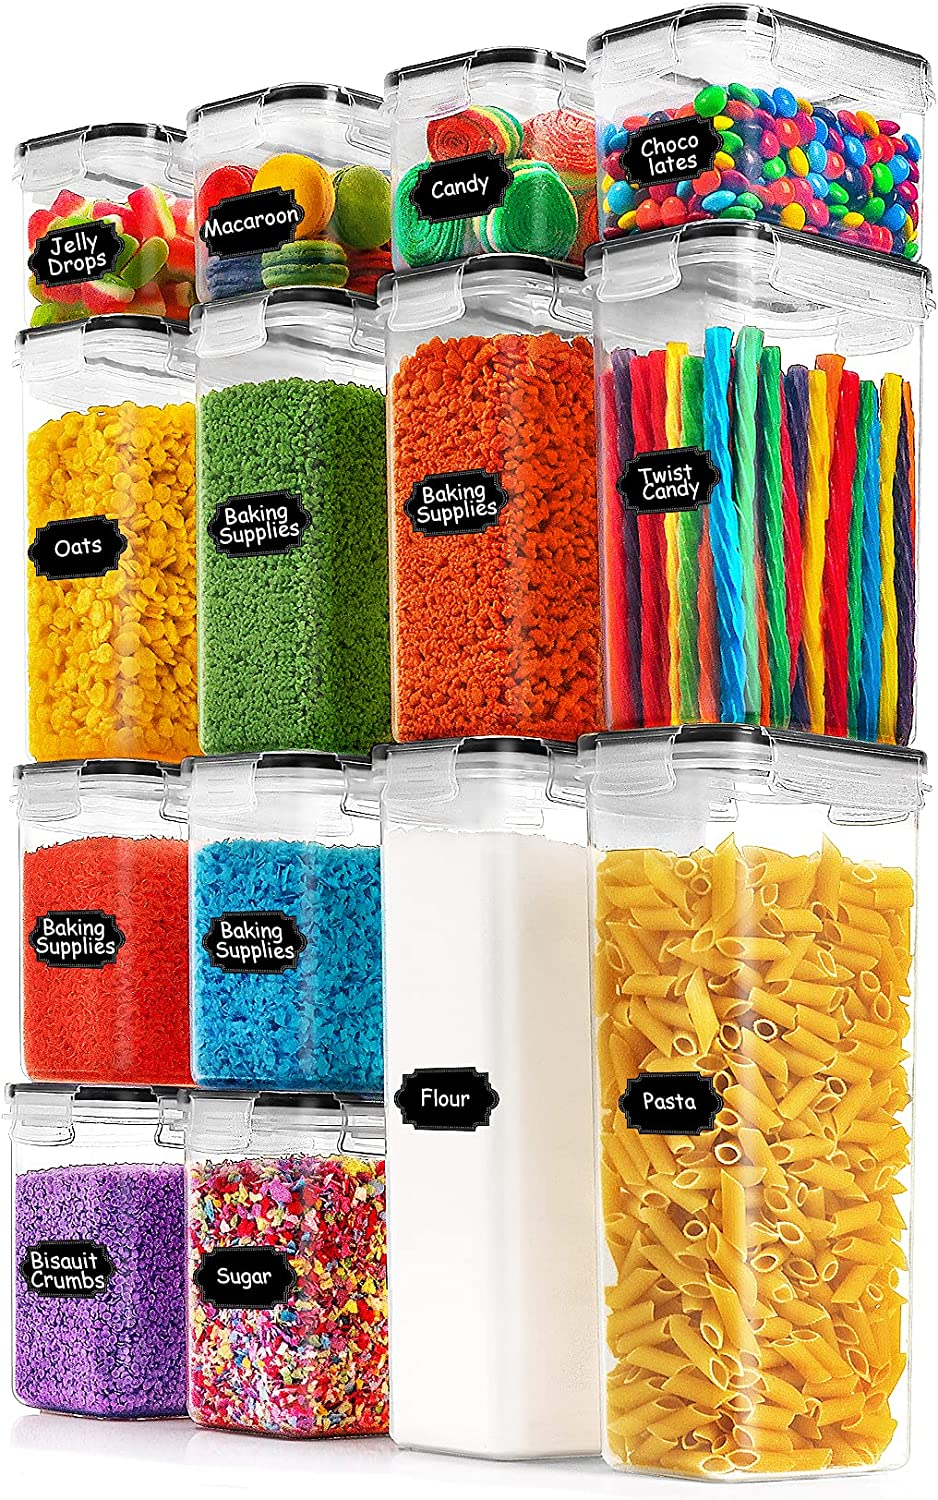 Paincco Airtight Food Storage Containers Set - 14pcs Plastic BPA Free Kitchen & Pantry Organization Canisters for Cereal, Flour & Baking Supplies, Include 20 Labels & 1 Marker, Black